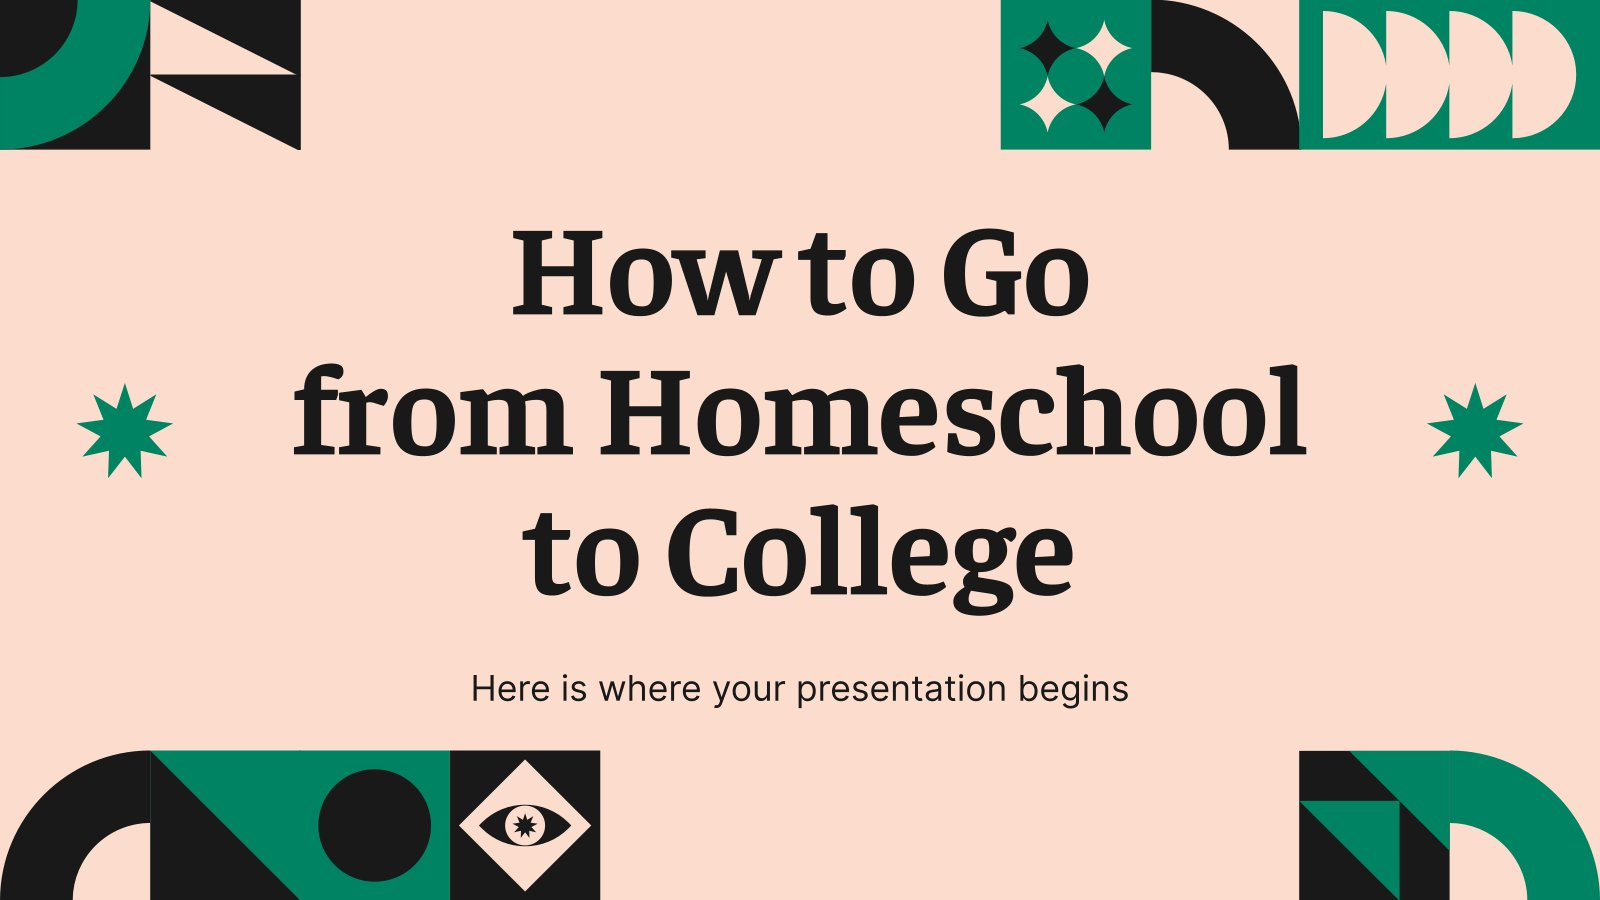 How to Go from Homeschool to College presentation template